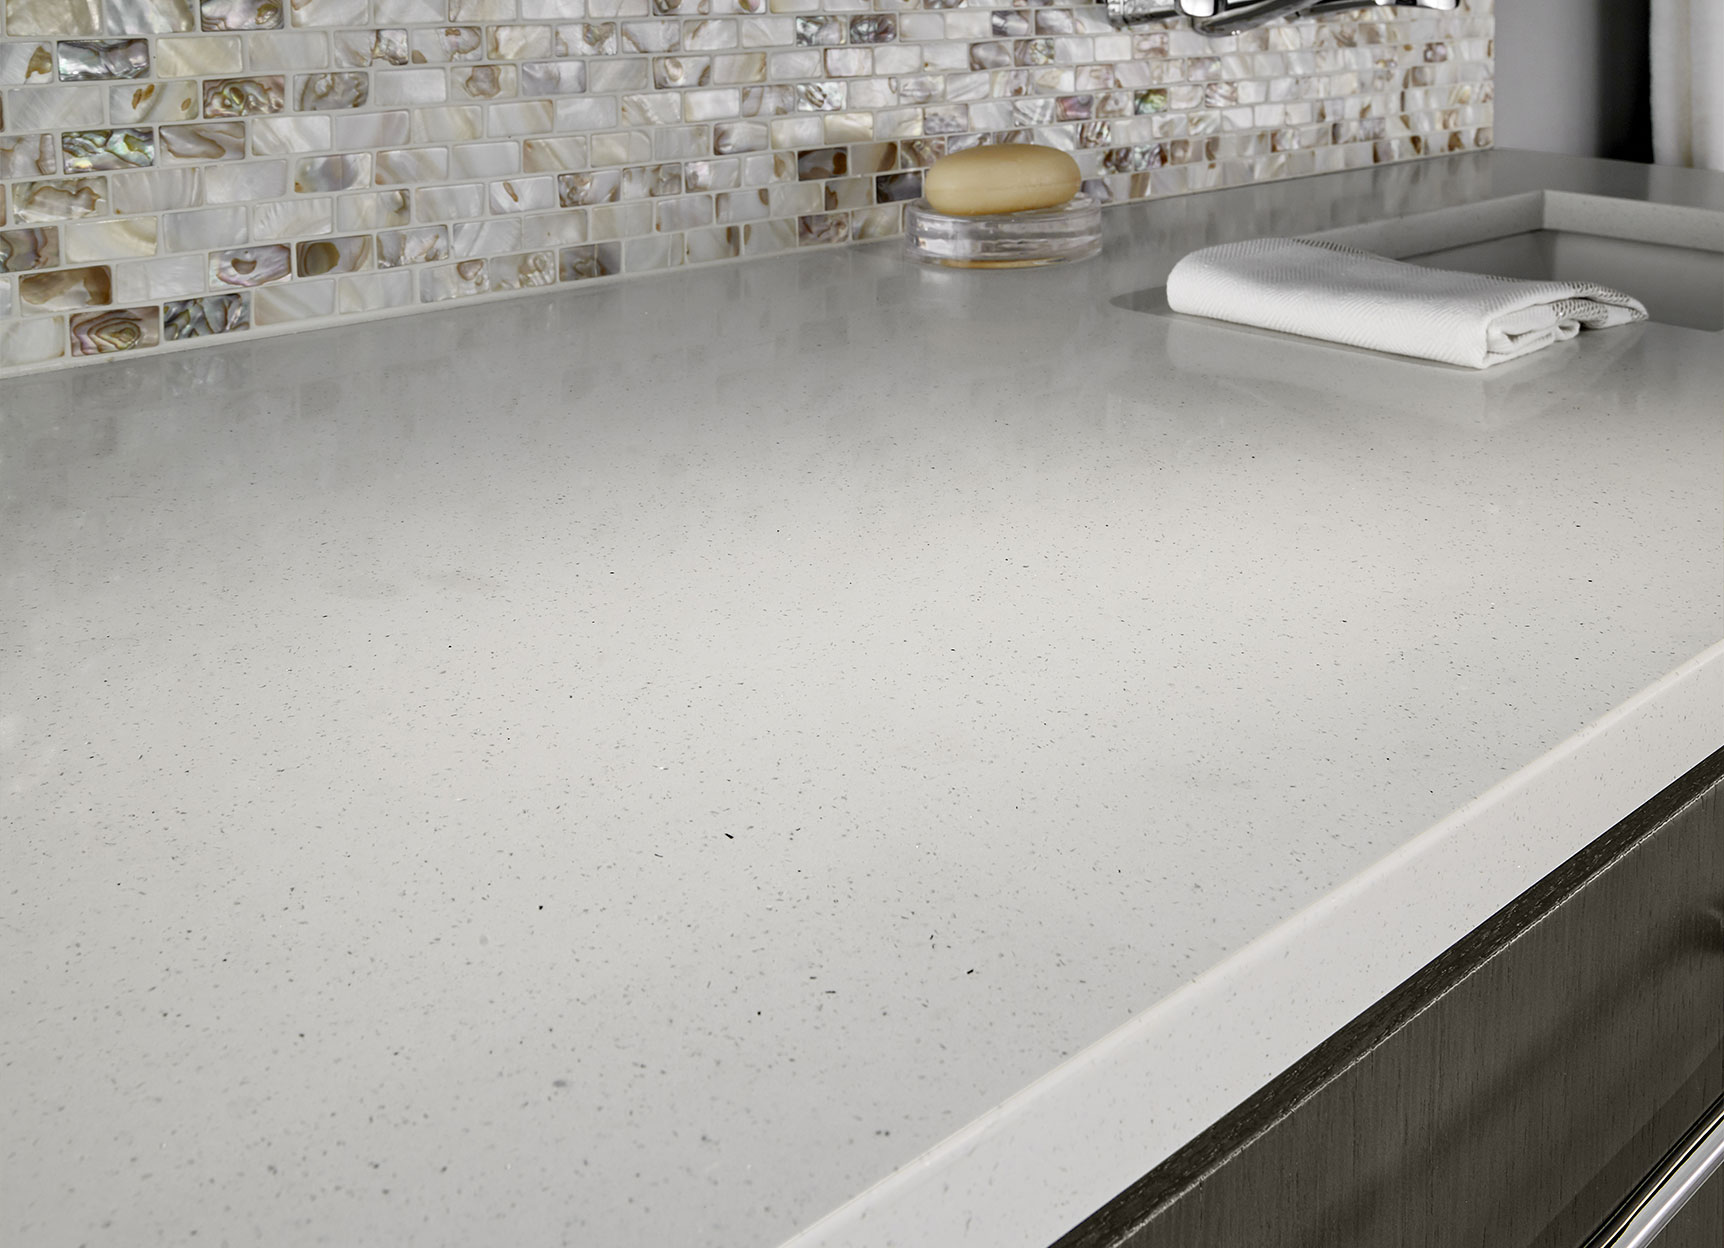 Superbe Q Premium Natural Quartz Surfaces Are The Ultimate Integration Between  Natural And Manufactured Materials, Giving It Superior Function Over Many  Other ...